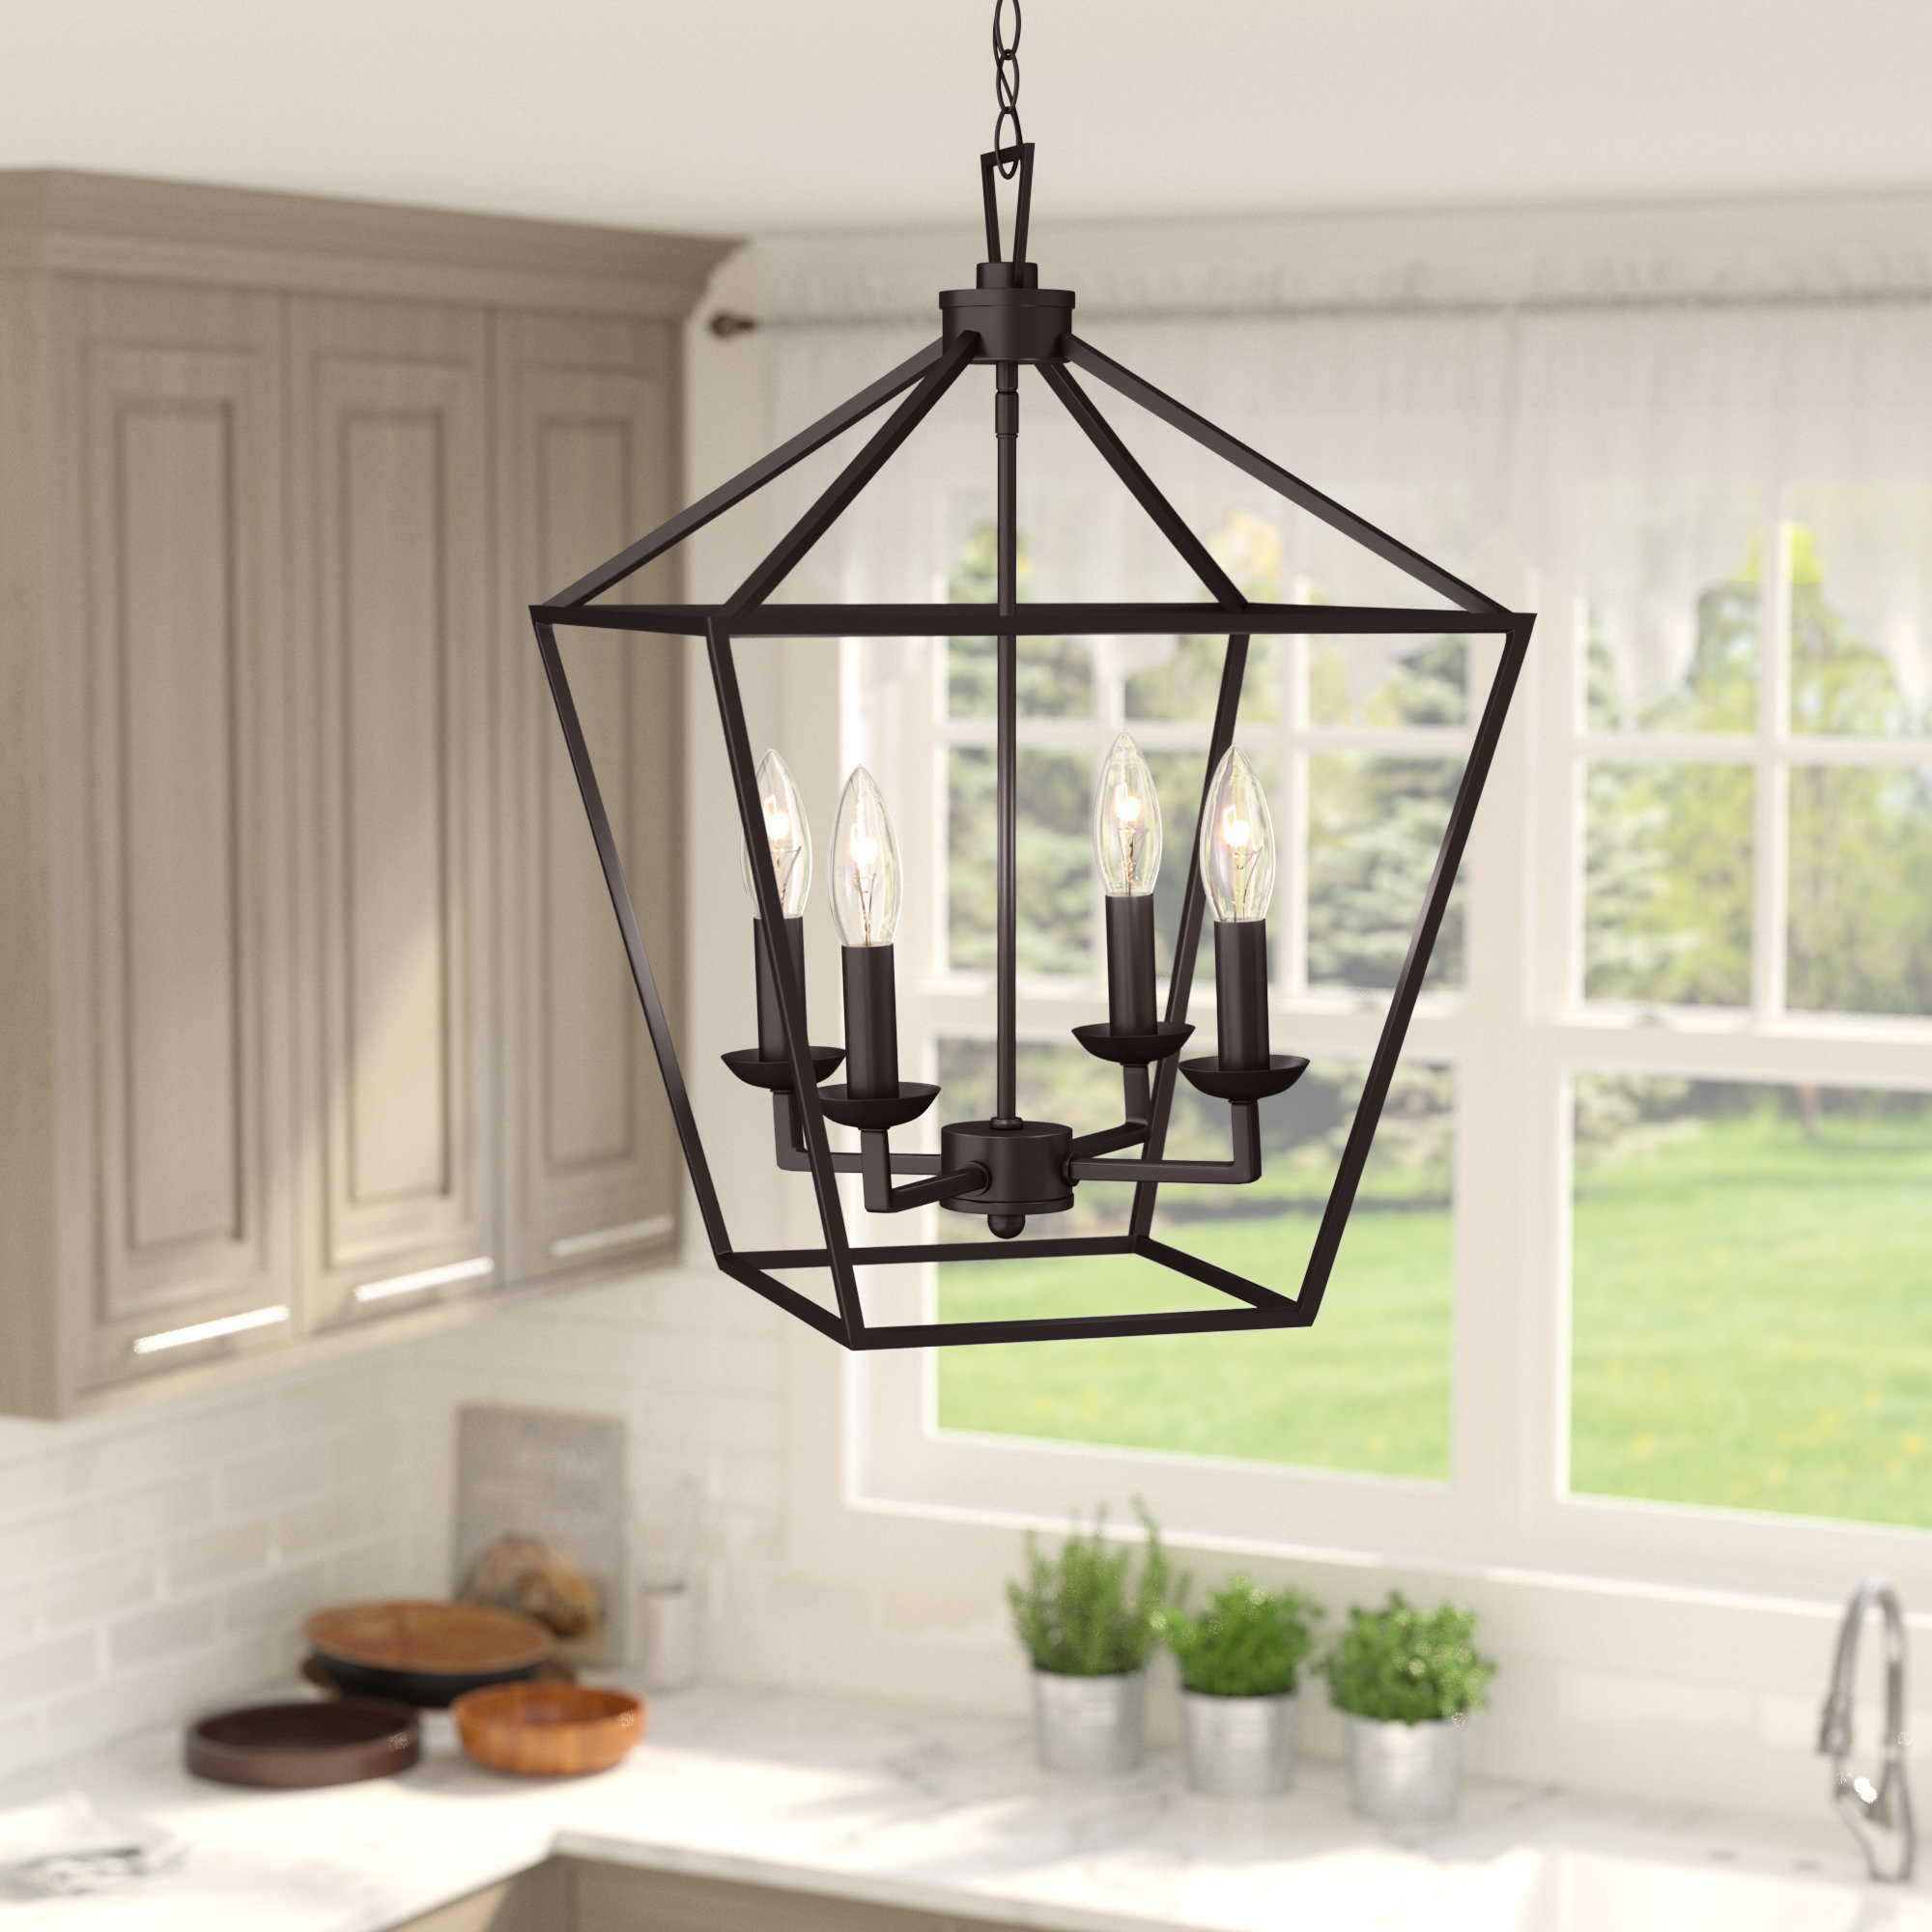 Most Recently Released Carmen 4 Light Lantern Geometric Pendant Inside Carmen 6 Light Lantern Geometric Pendants (View 6 of 20)